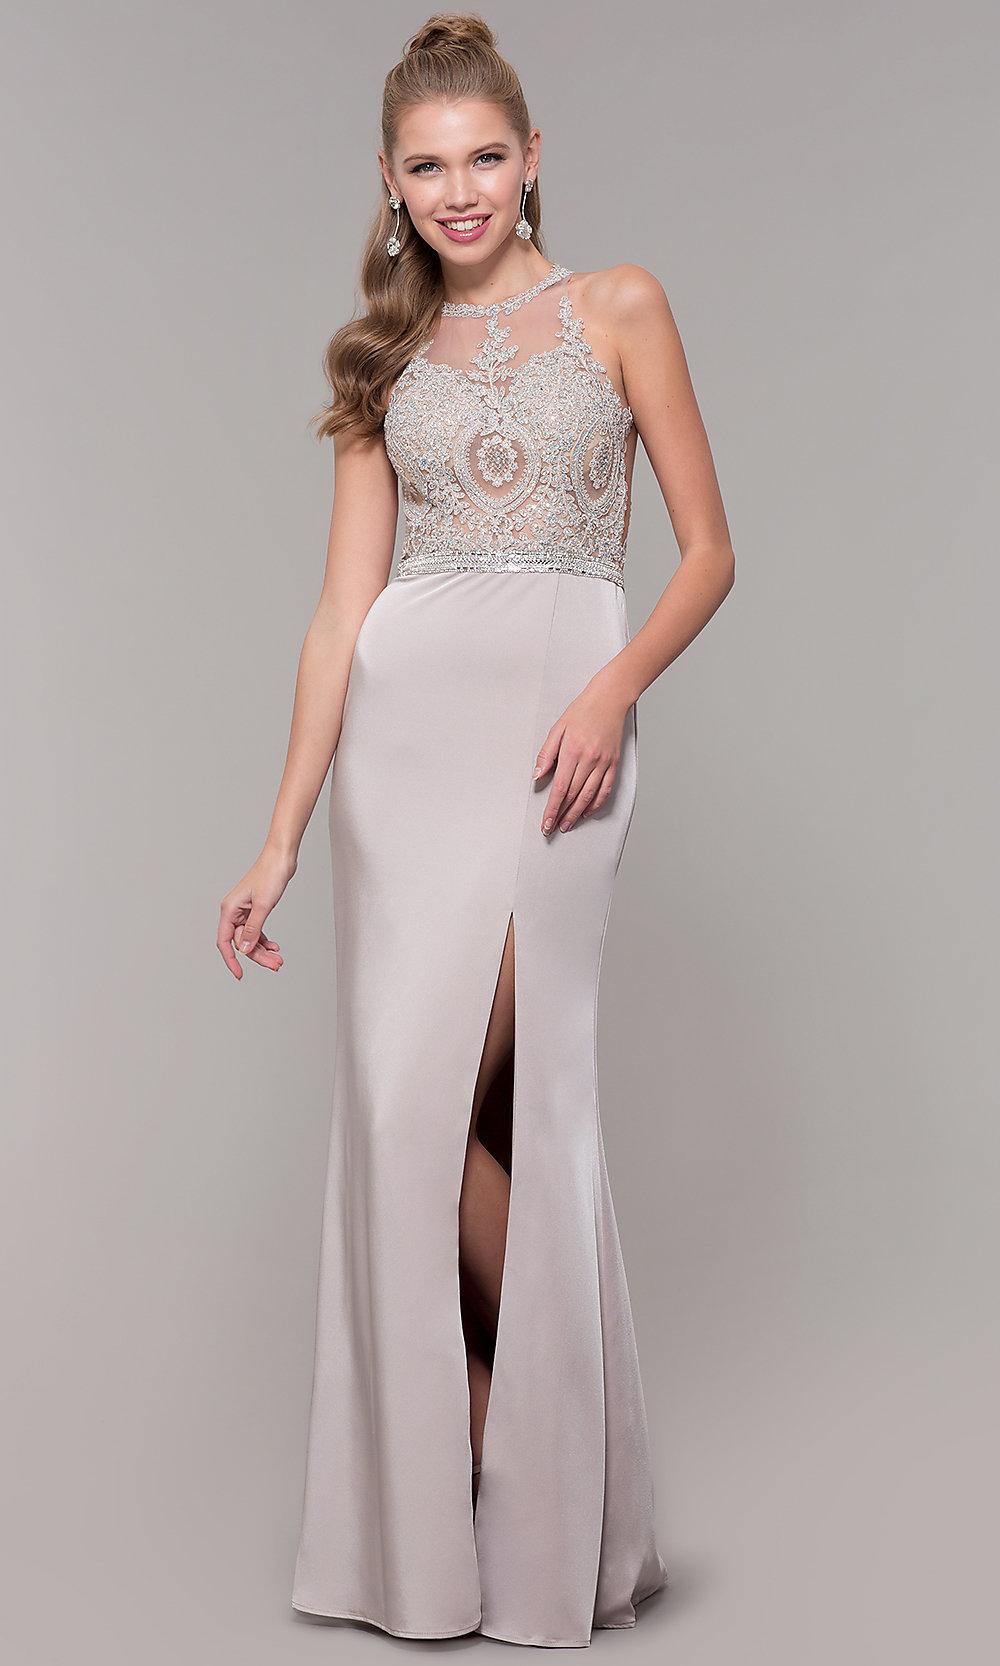 Chiffon Long Illusion-Bodice Prom Dress with Embroidered Lace